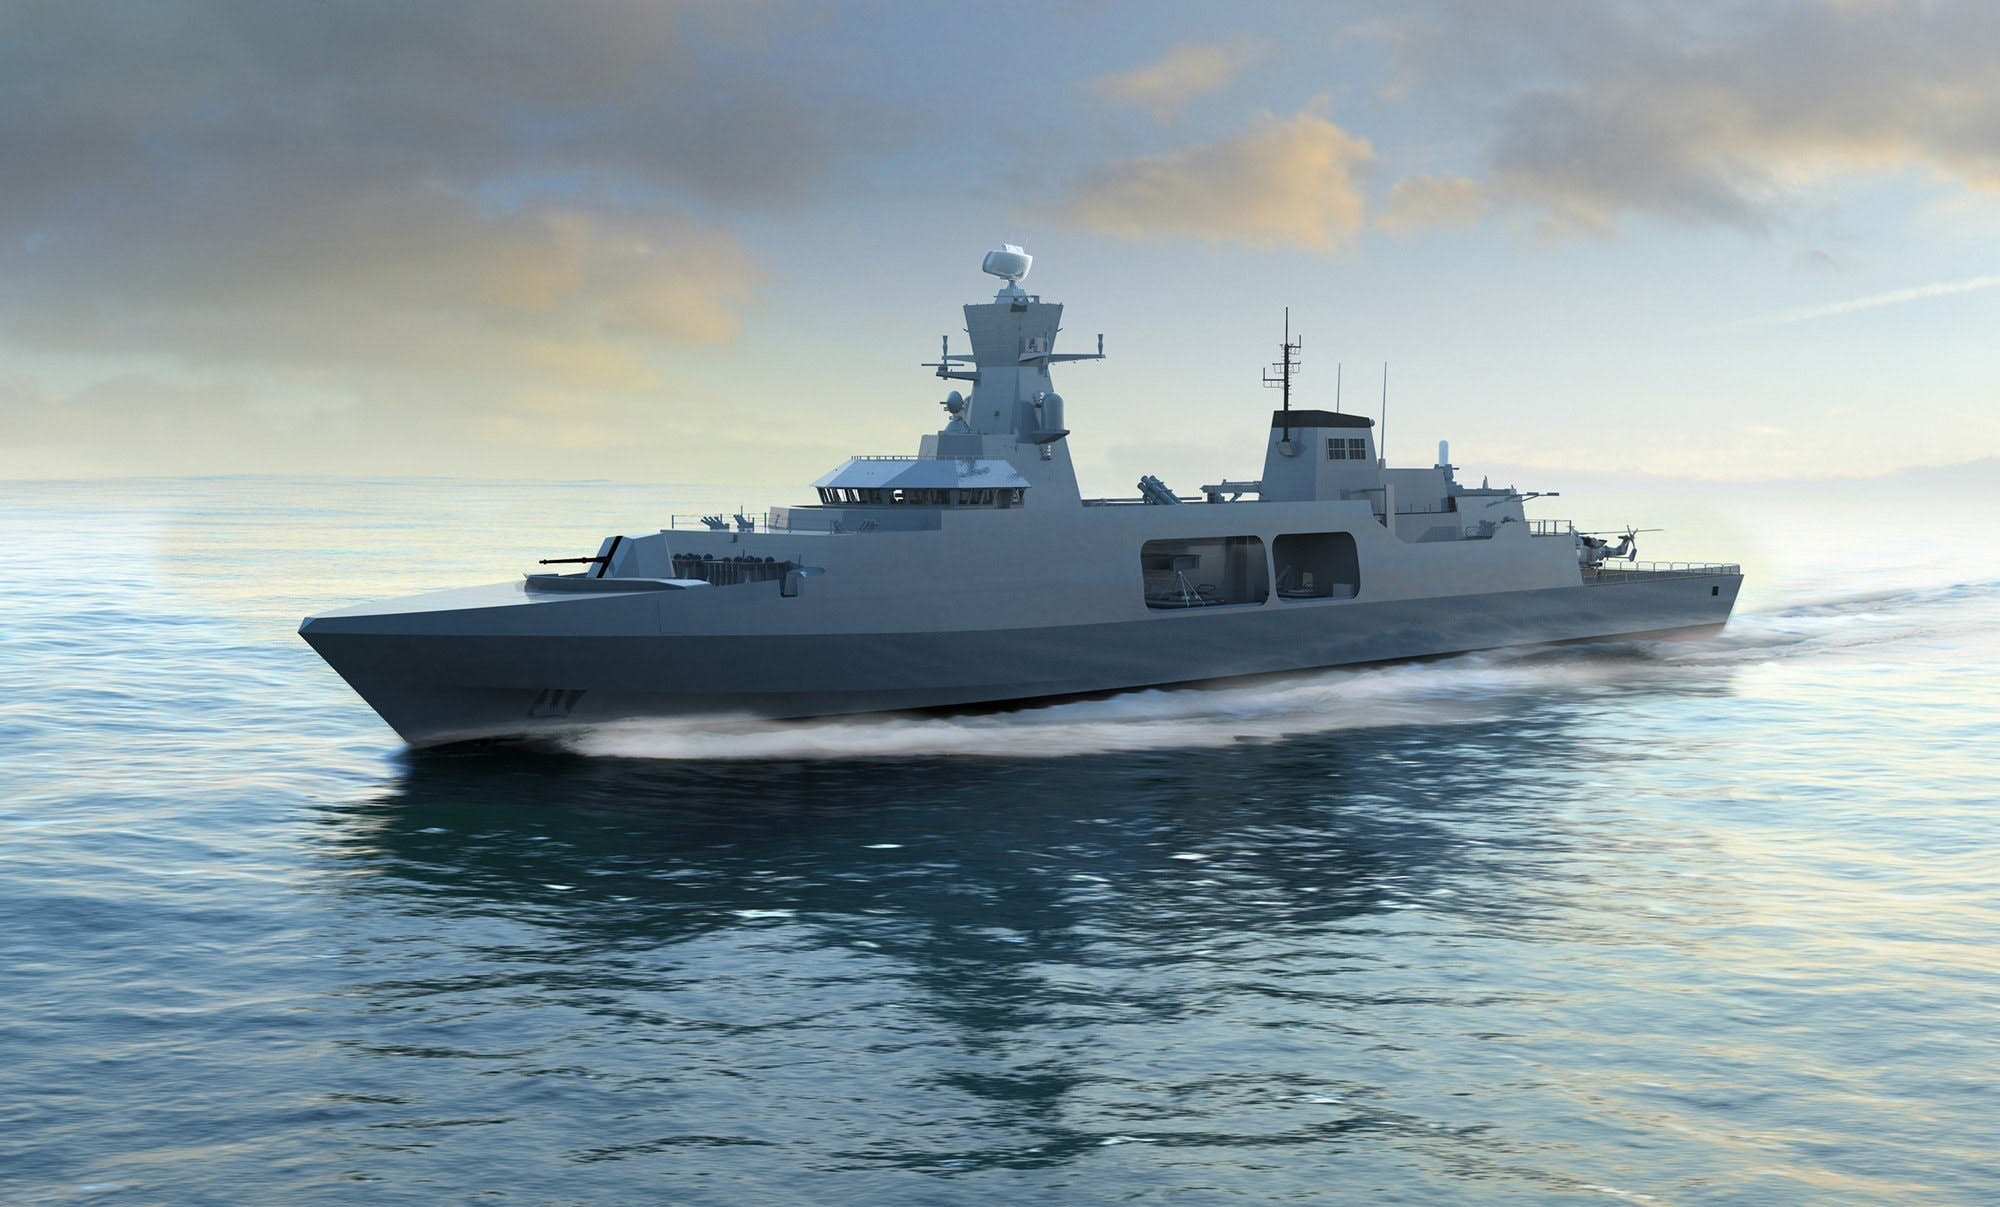 BAE showcase Type 31e design to international audiences at DIMDEX 2018